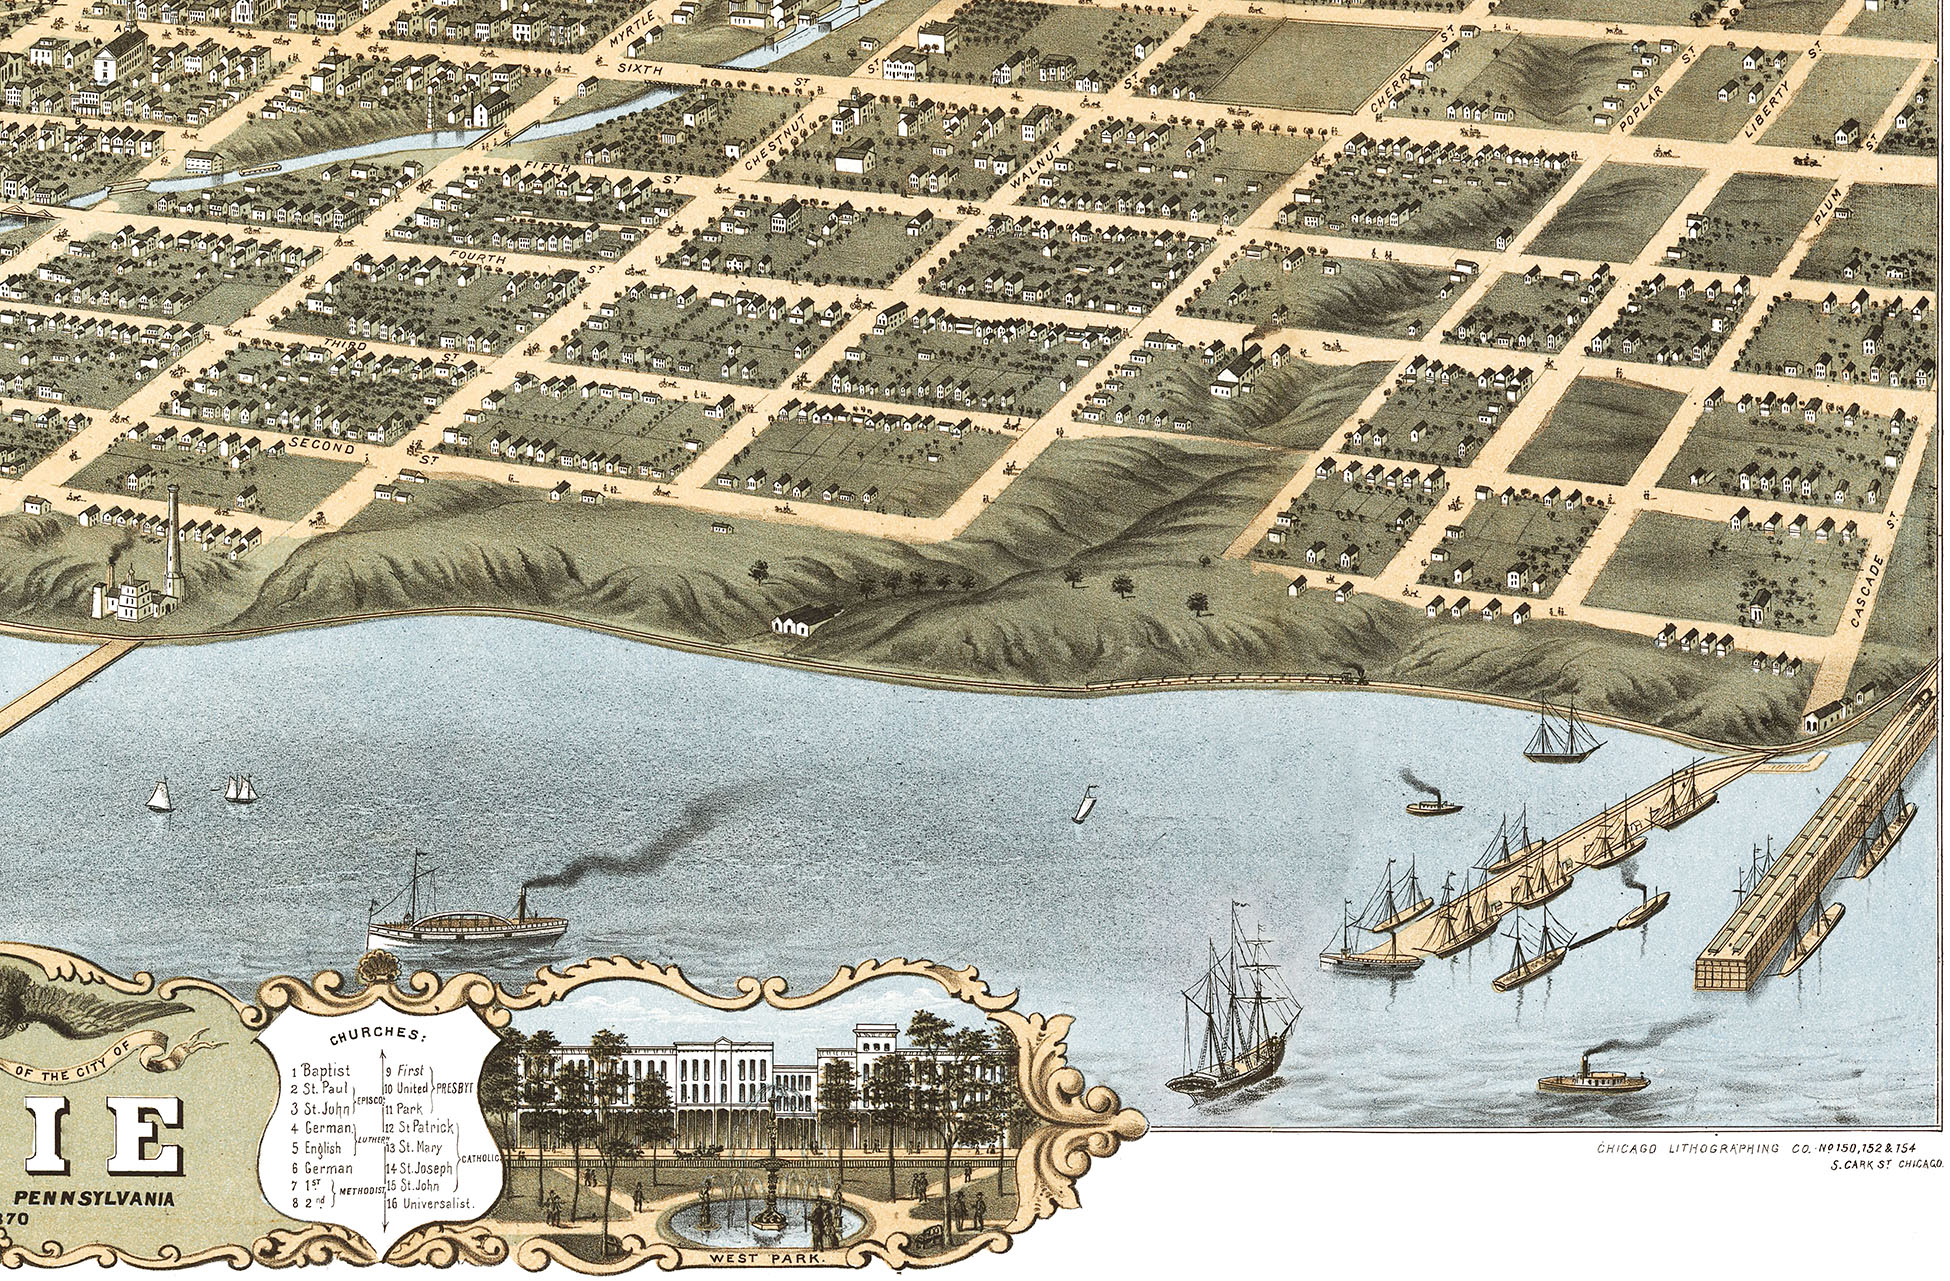 Erie, Pennsylvania in 1870 - Bird's Eye View, Map, Aerial, Panorama,  Vintage, Antique, Fine Art, Wall Art, History from The Old Maps of the 1800s